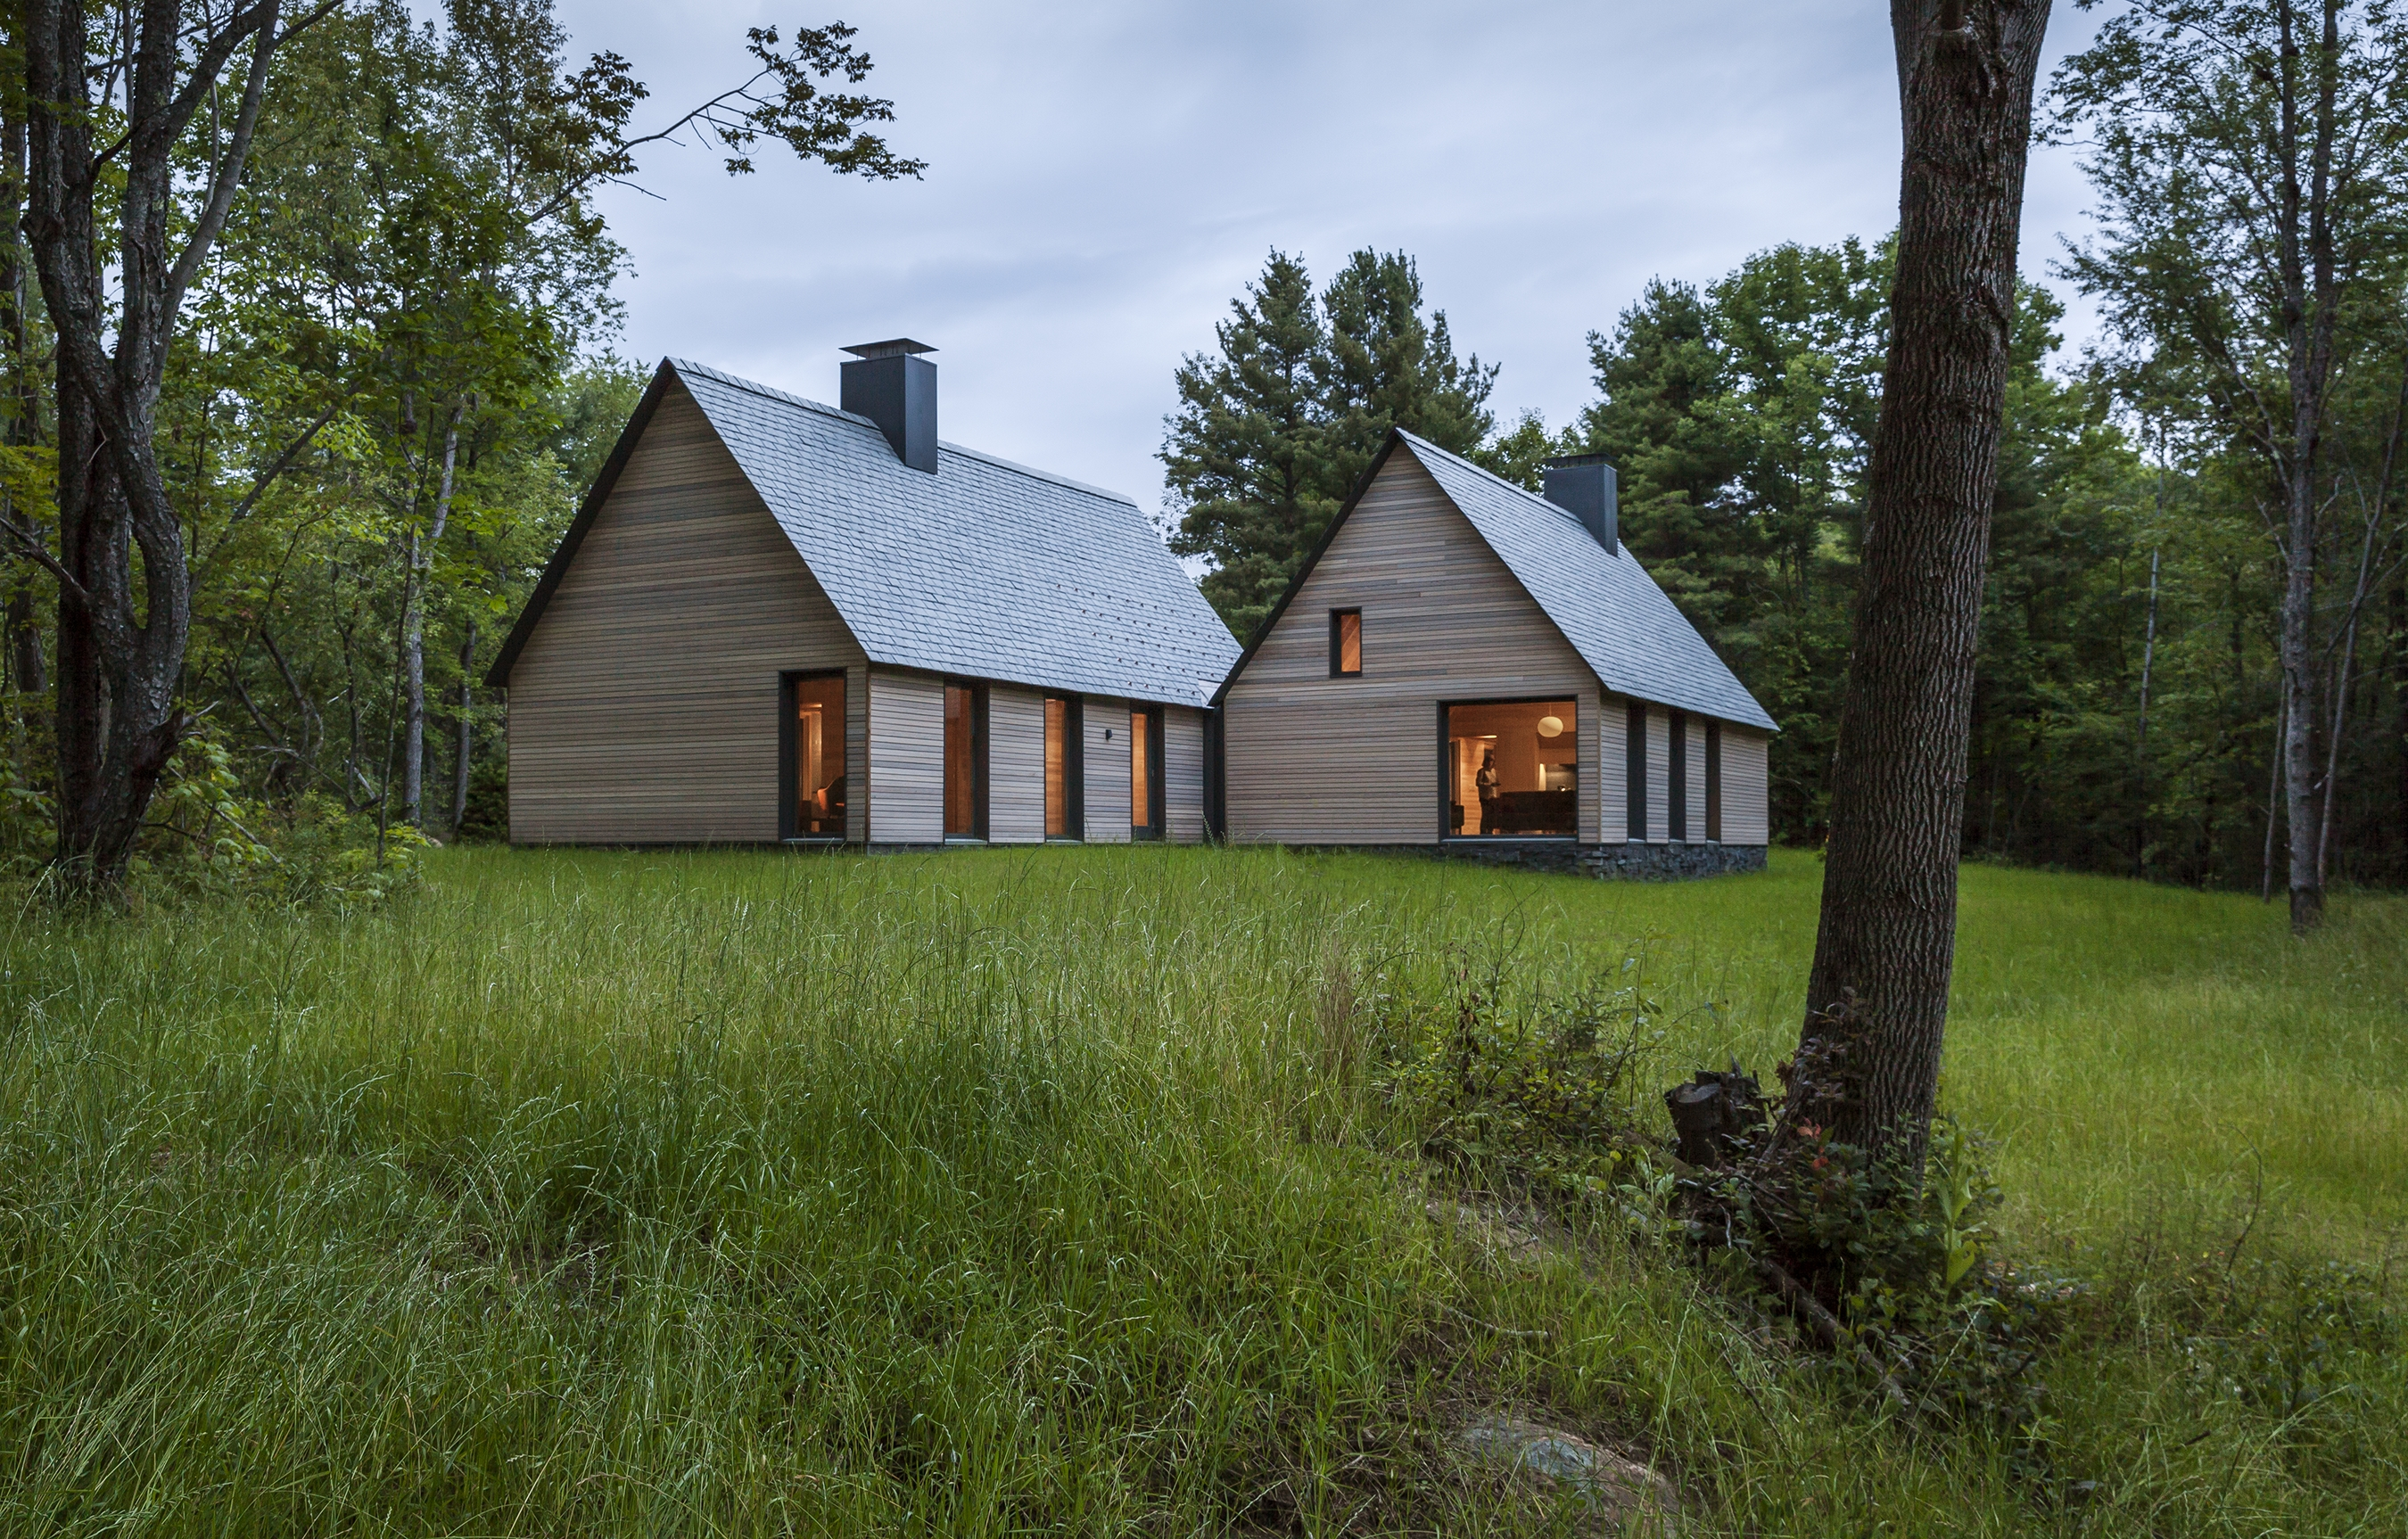 Good HGA Architects And Engineers (HGA) For The Marlboro Music Cottages At The  Marlboro Music School And Festival In Marlboro, Vermont. The Project Team  Included ... Nice Design